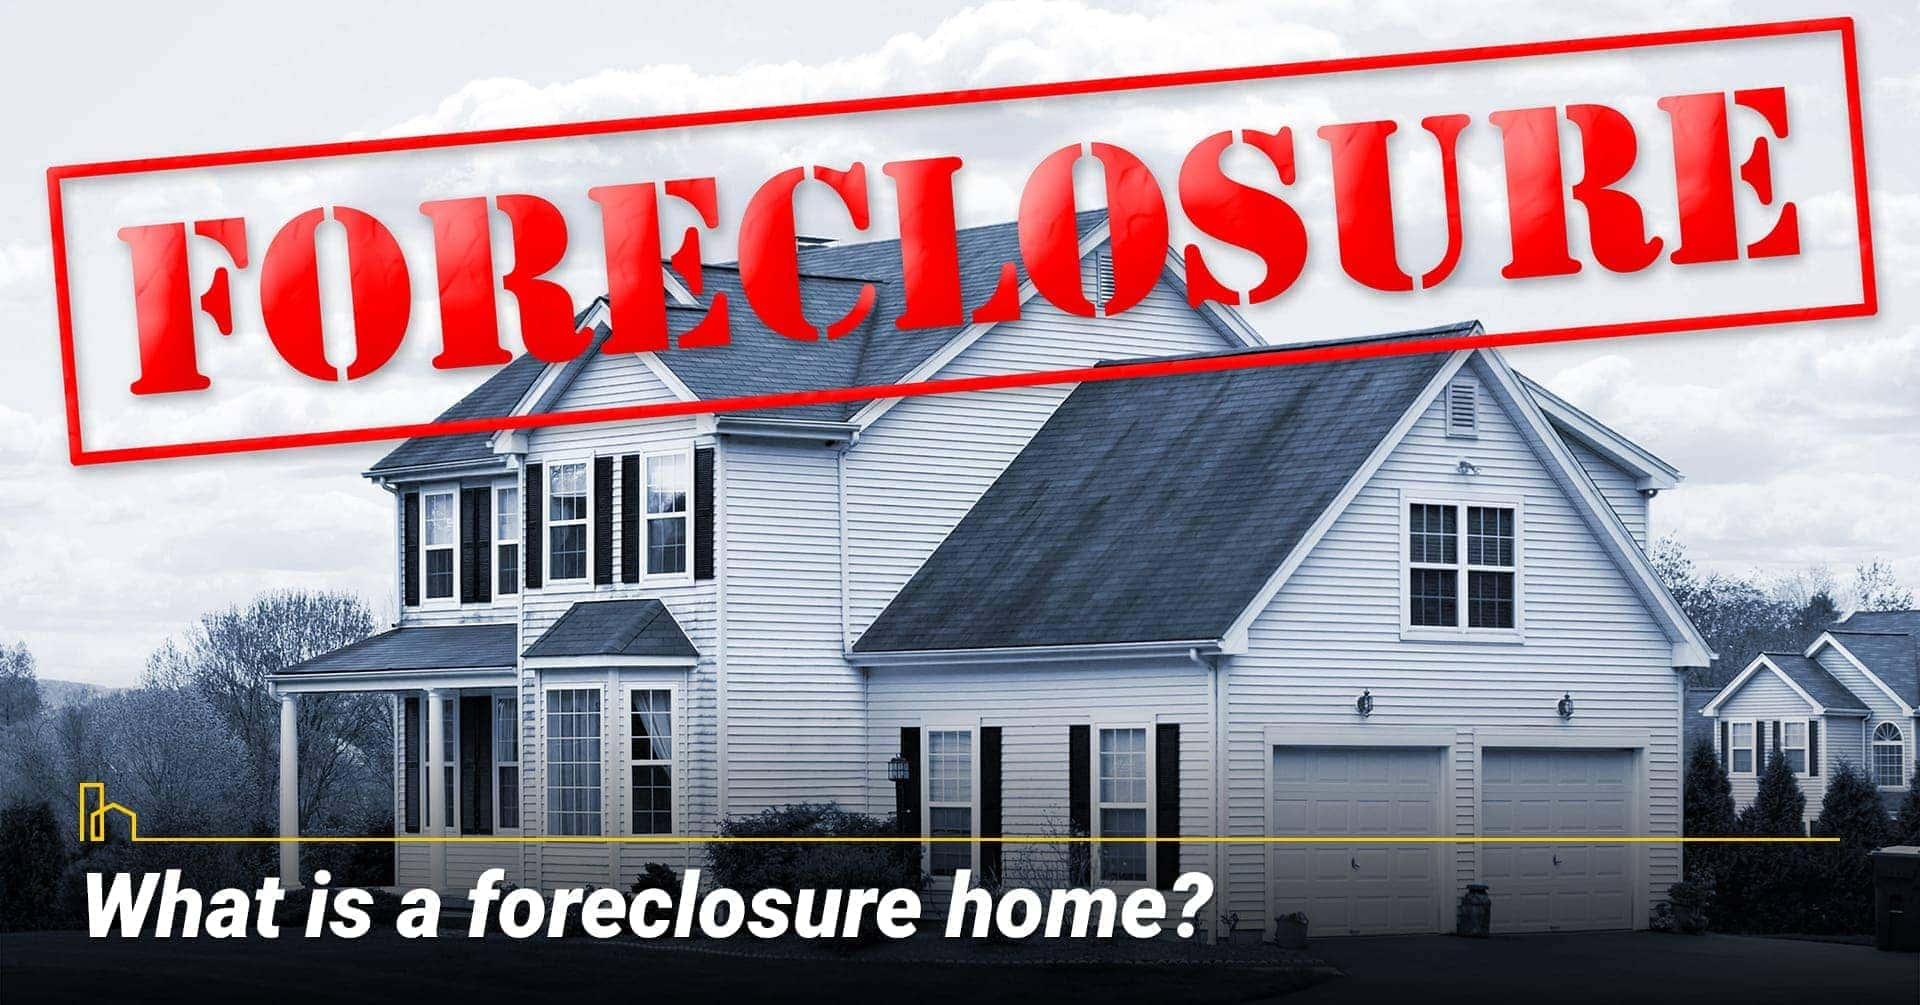 What is a foreclosure home? unable to make mortgage payments